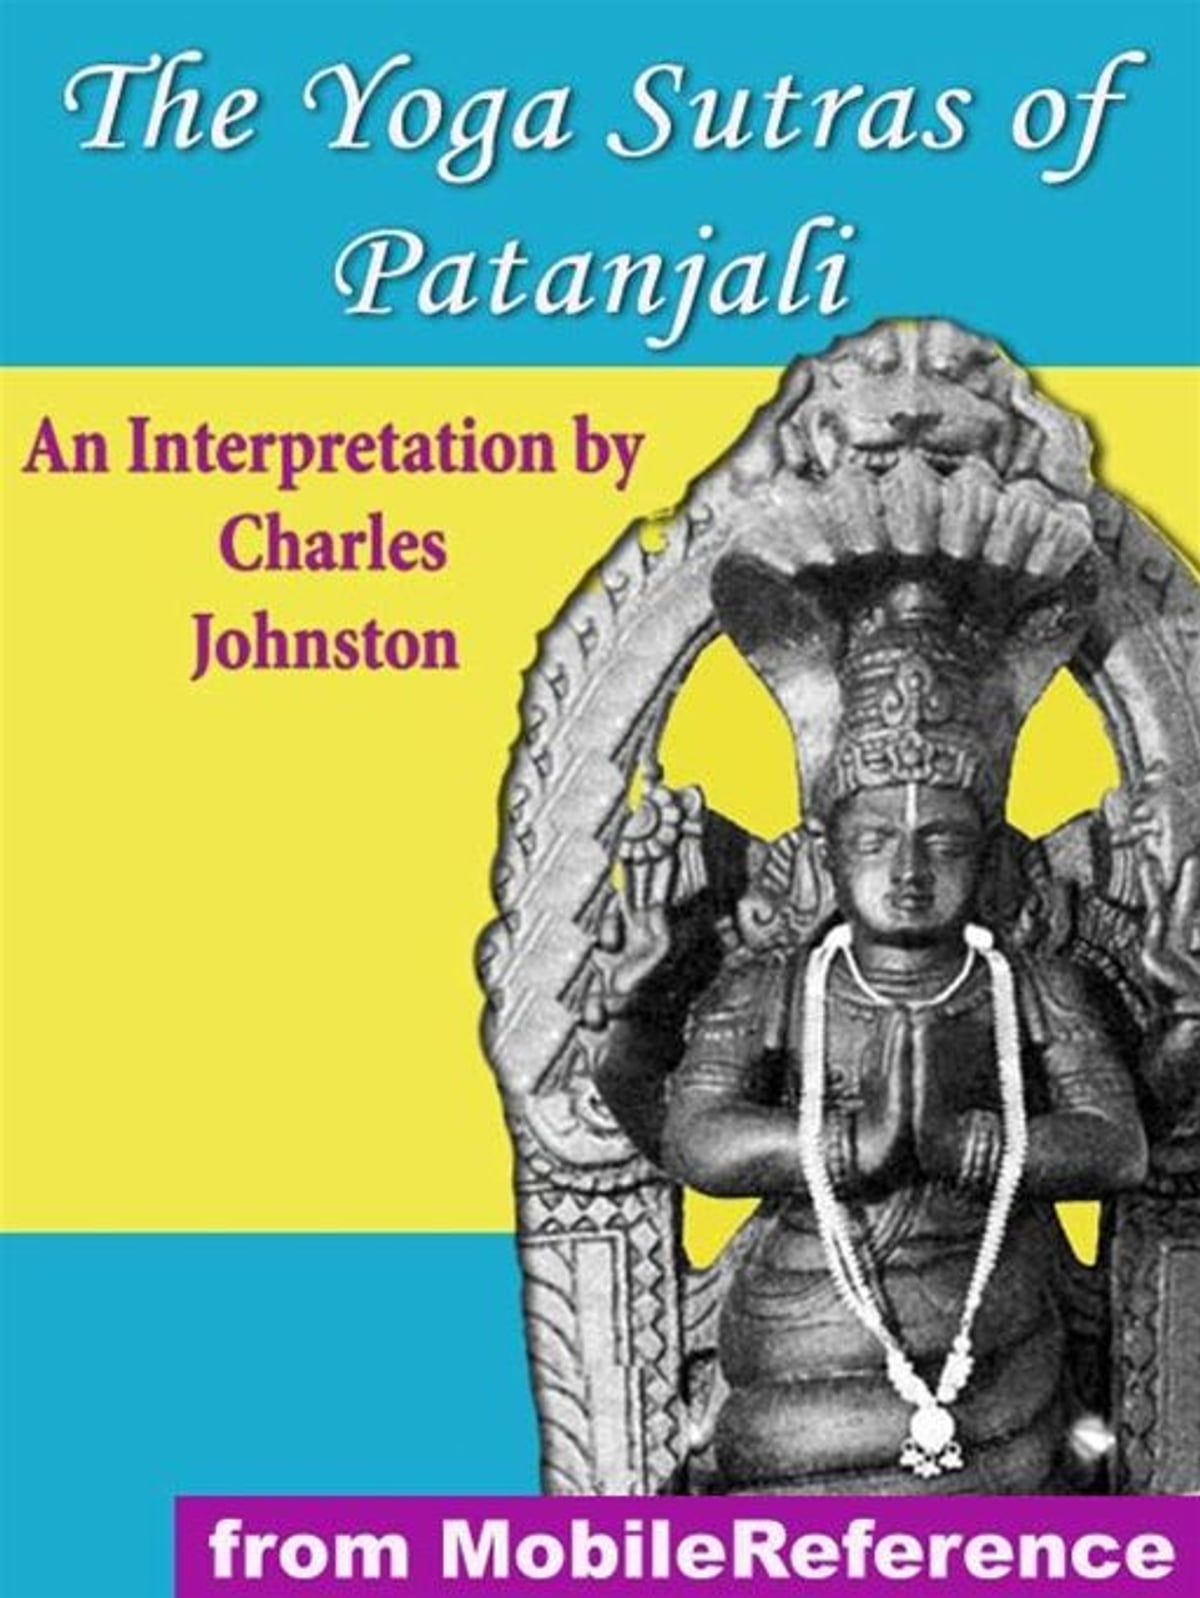 The Yoga Sutras Of Patanjali An Interpretation By Charles Johnston Mobi Classics Ebook By Patanjali Charles Johnston Interpretation 9781607782650 Rakuten Kobo India